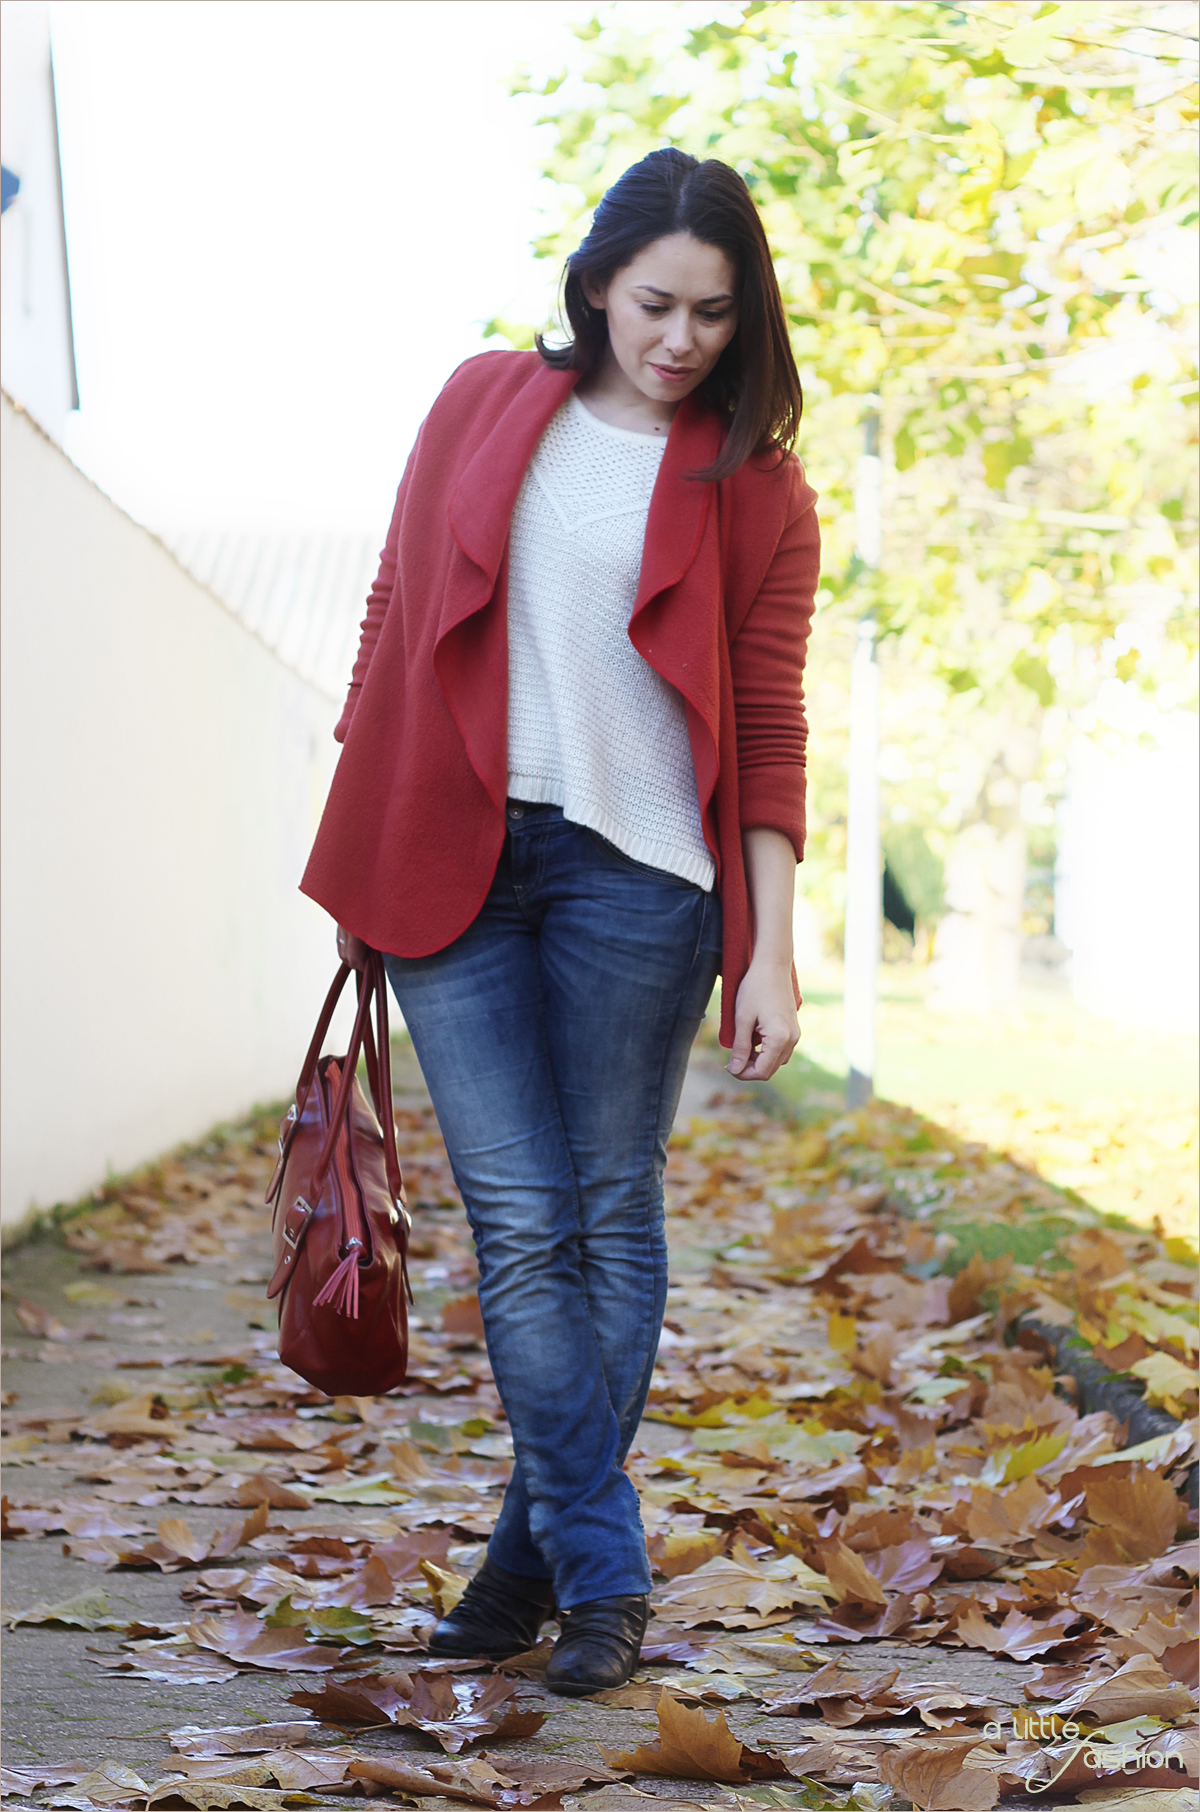 Ein letztes Herbst-Outfit | A Little Fashion | https://www.filizity.com/fashion/ein-letztes-herbst-outfit